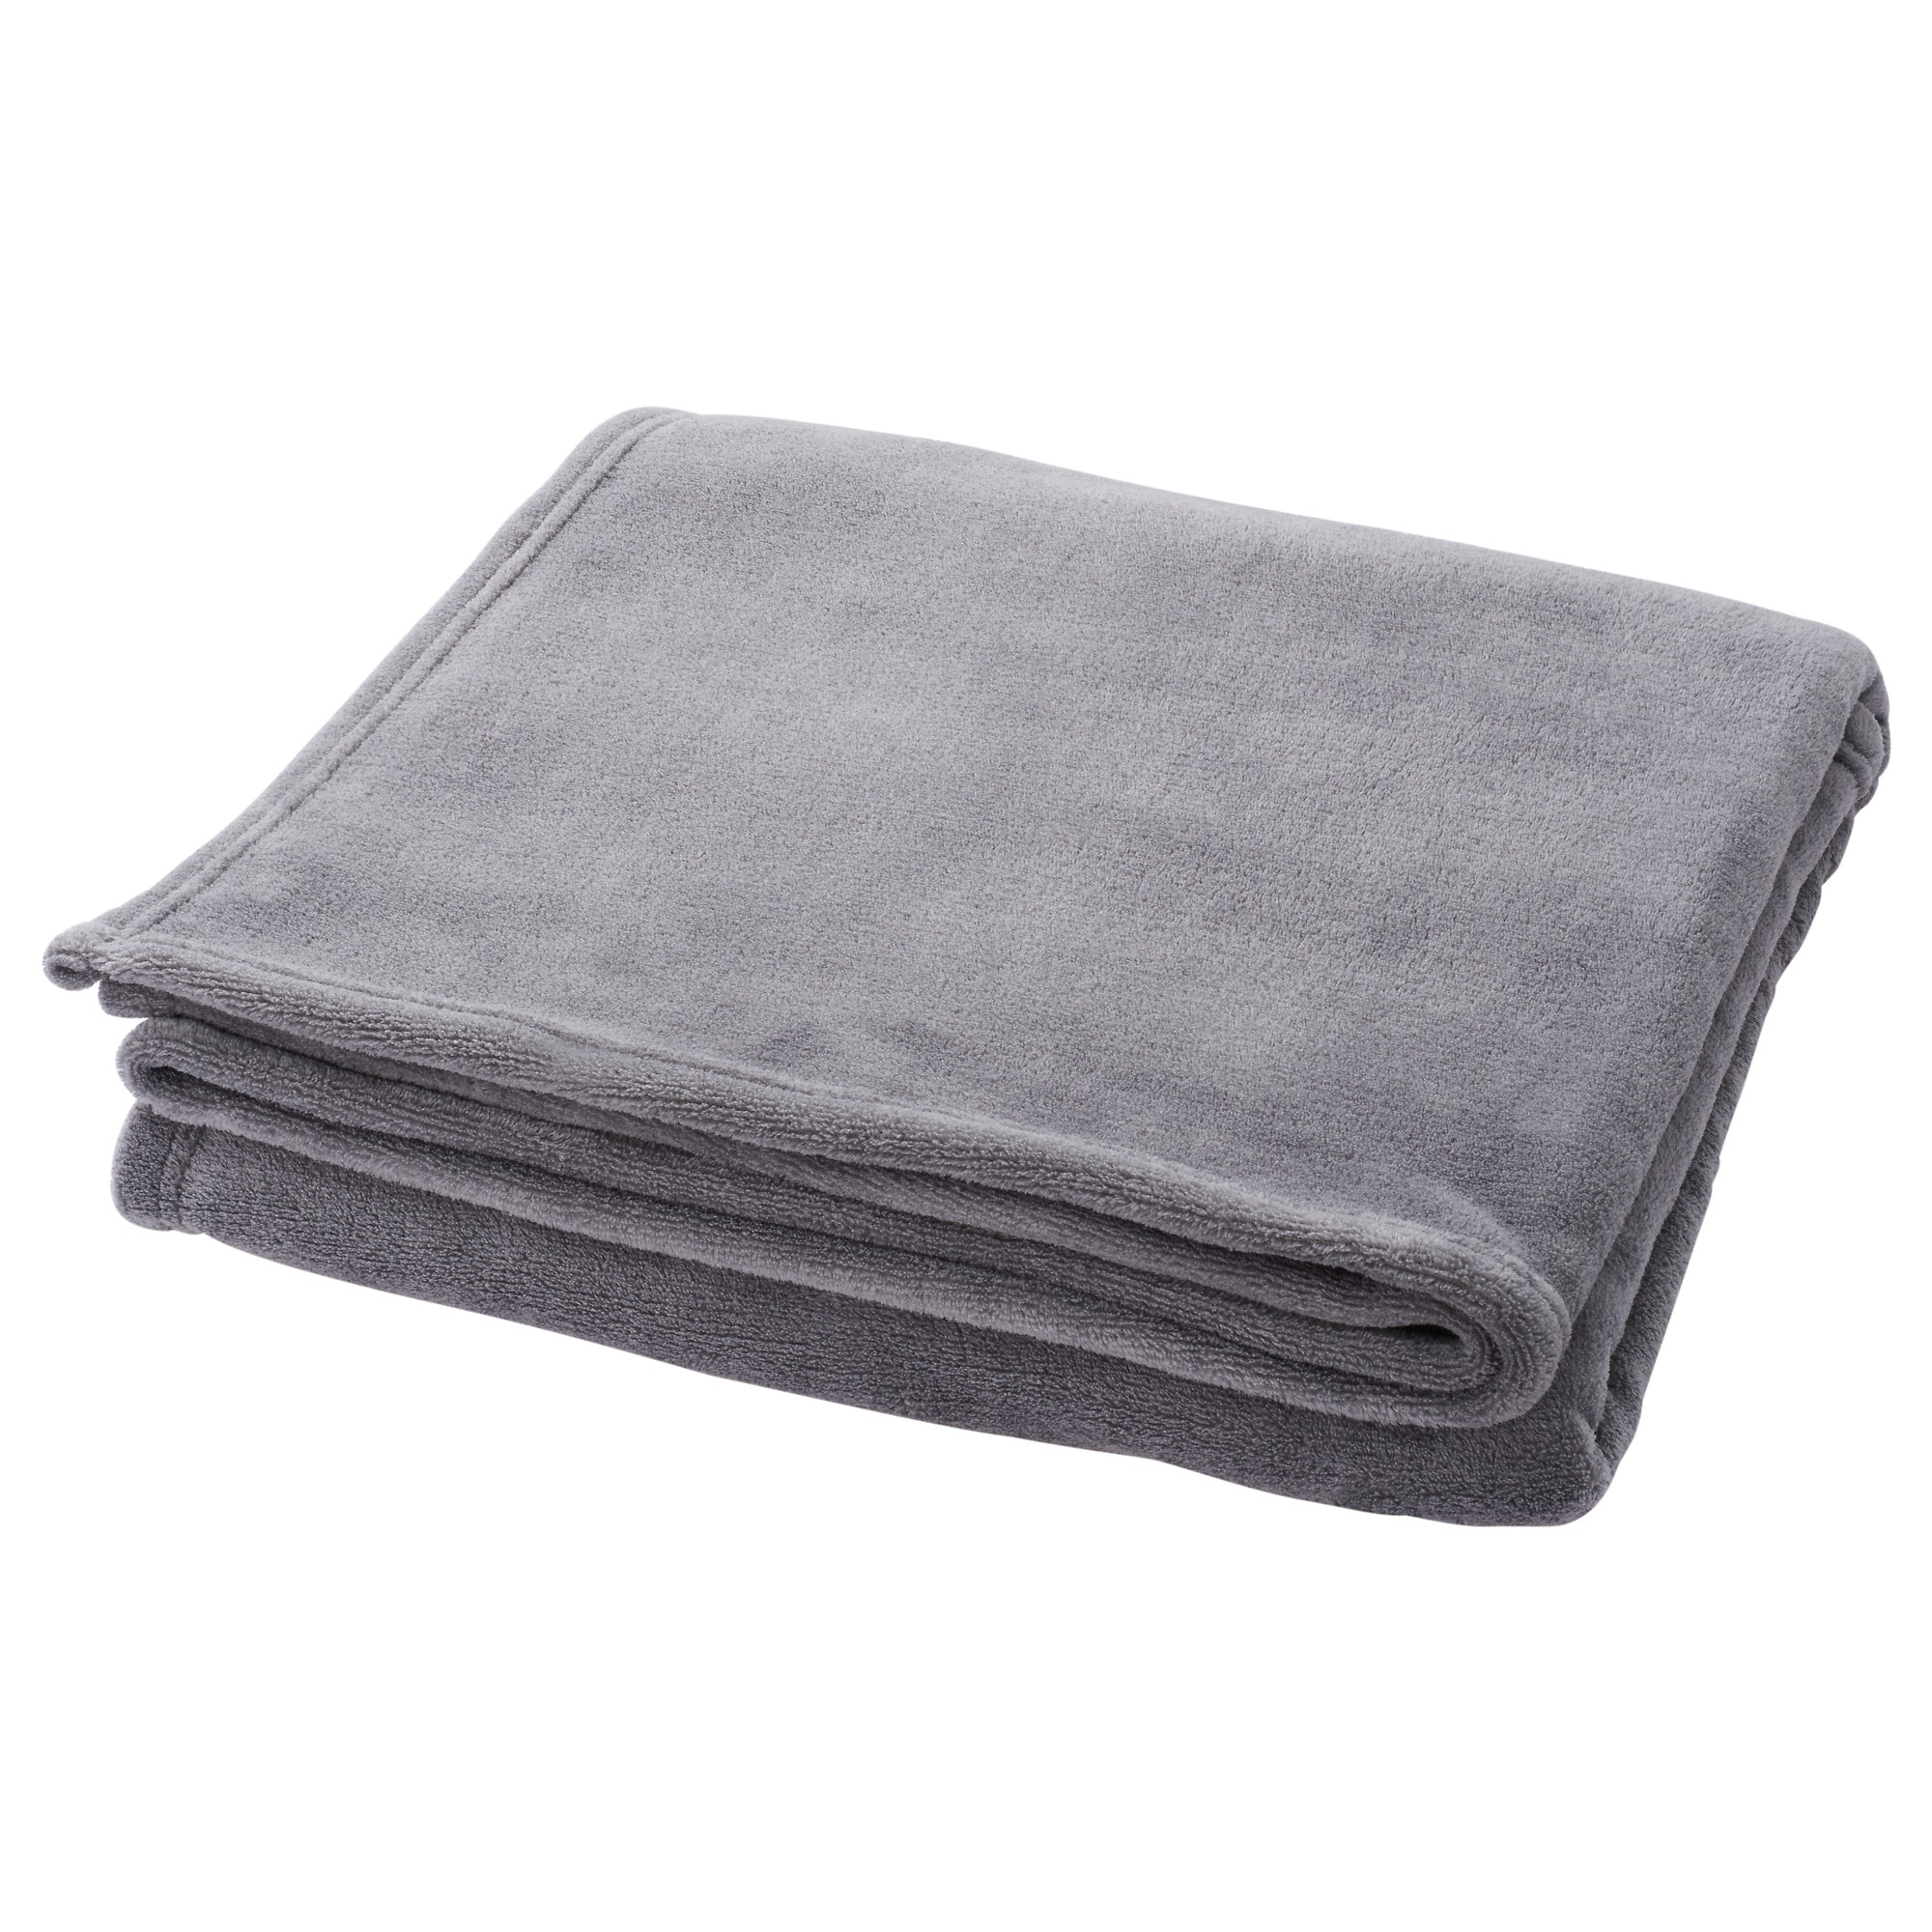 Plaid gris ikea